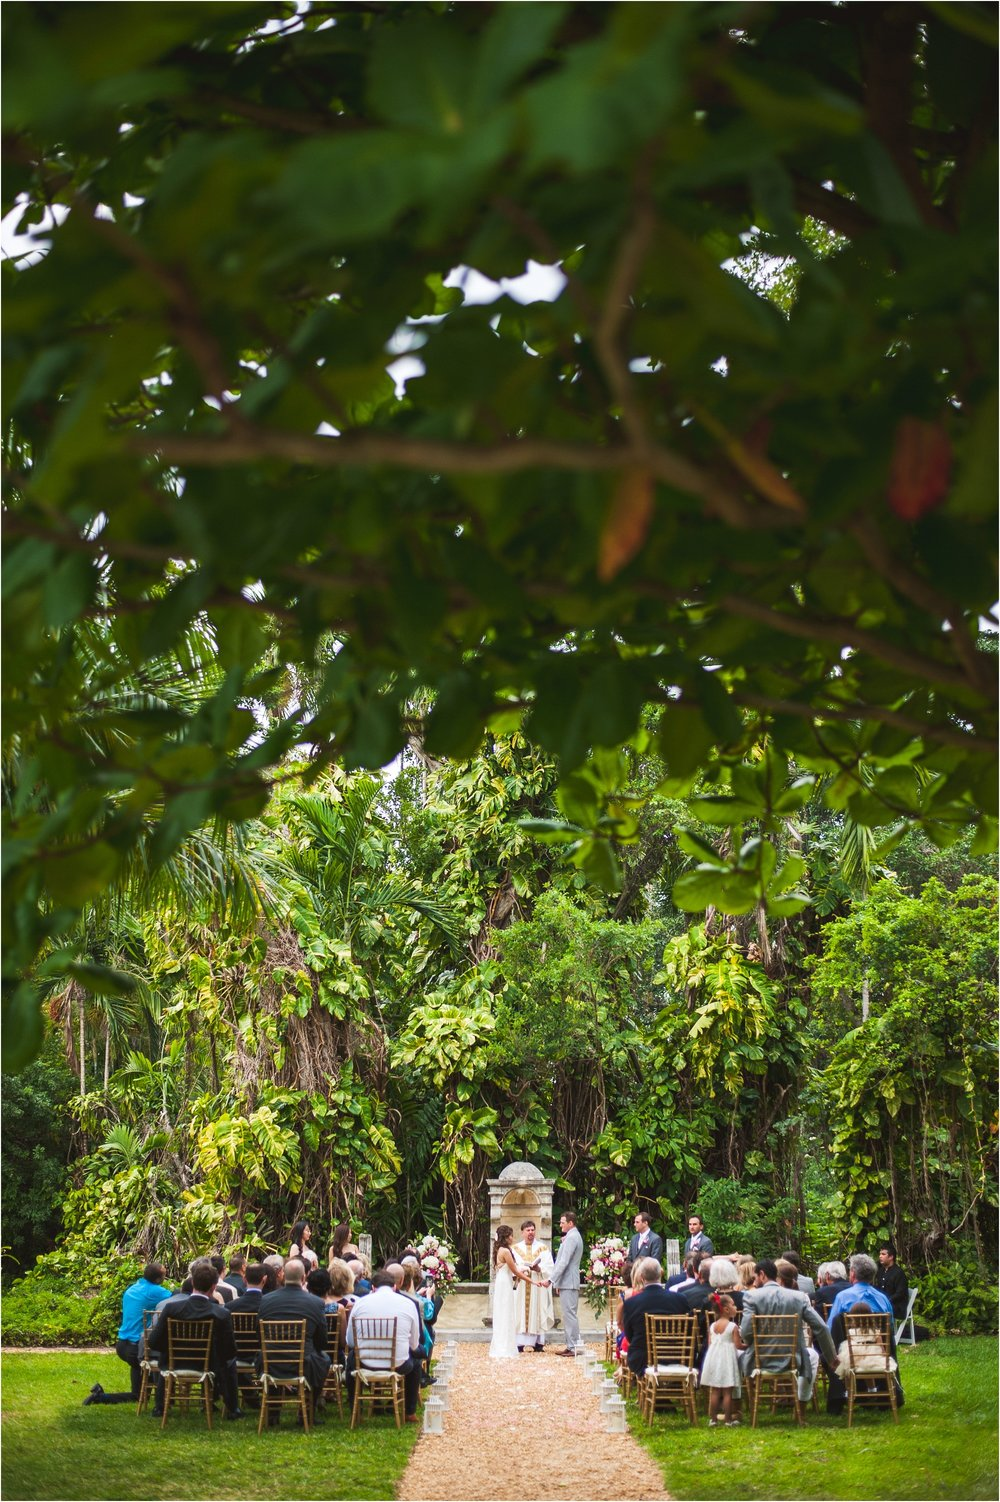 Spanish-Monastery-miami-beach-outdoor-elegant-wedding-photographer-jessenia-gonzalez_1156.jpg